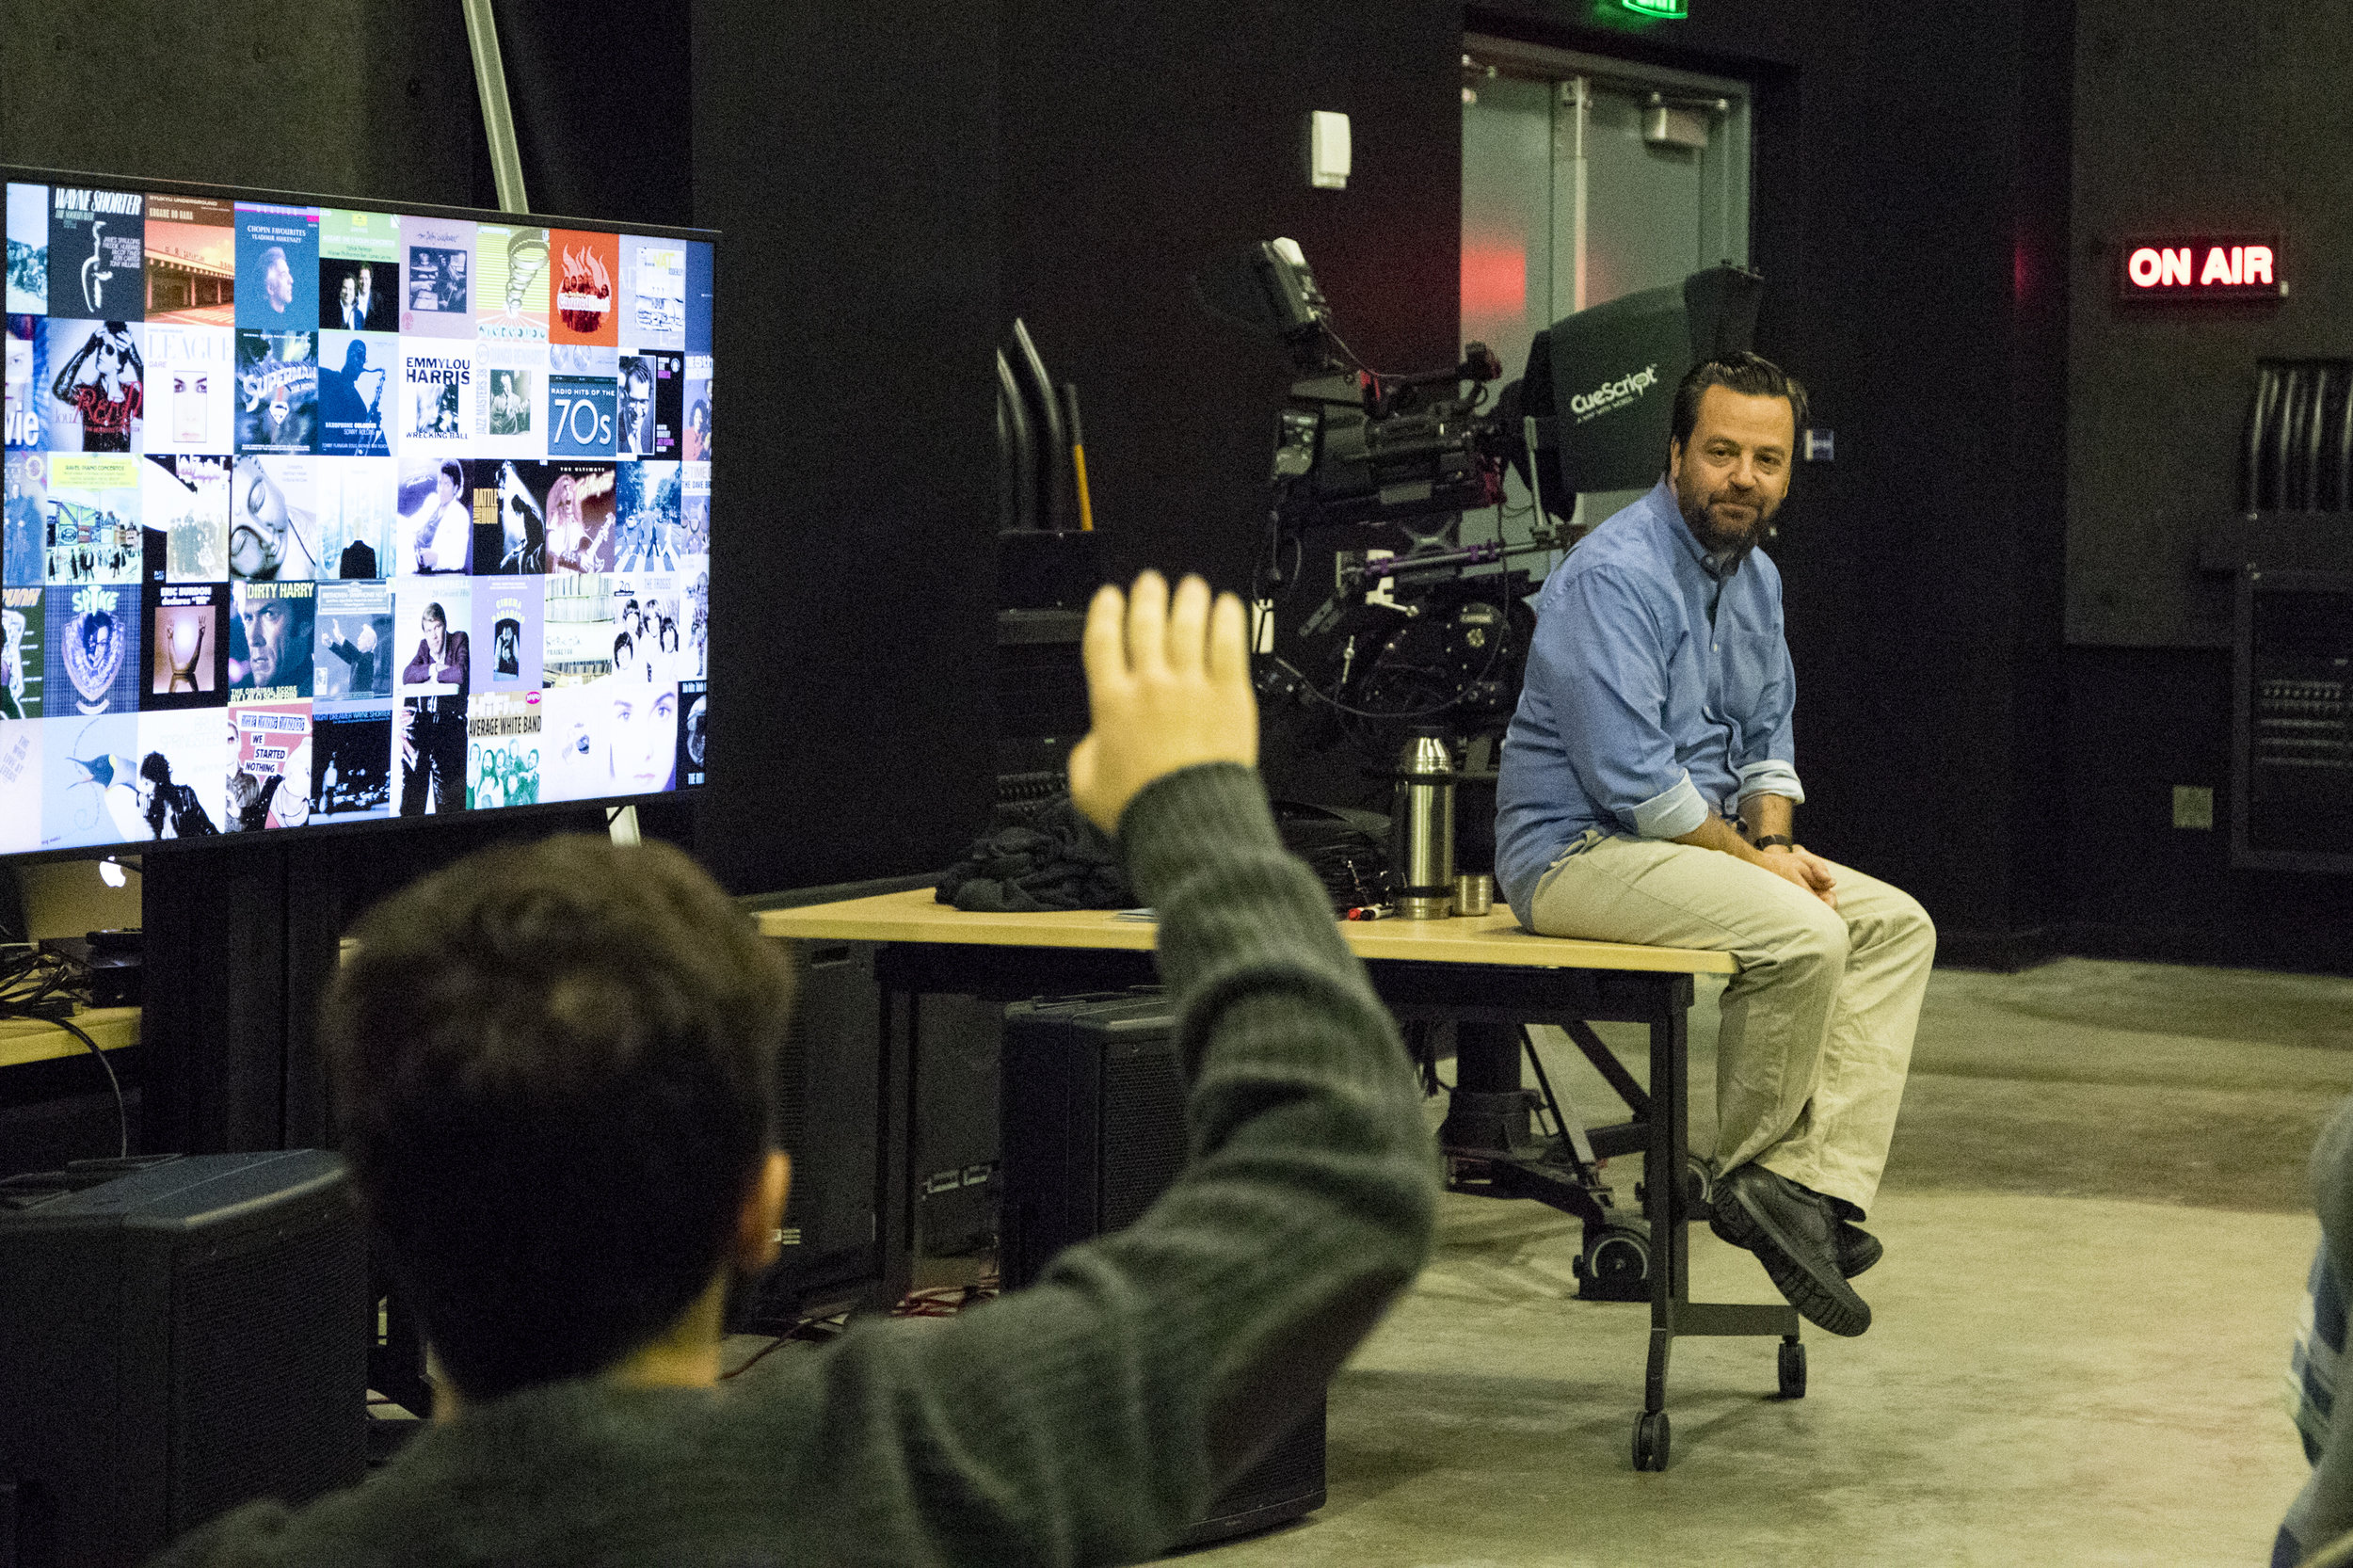 On September 14, 2017 Professor of Film and Production, Salvador Carrasco teaches a class at the new Santa Monica Colleges Center for Media and Design building in Santa Monica, Calif. (Jazz Shademan)